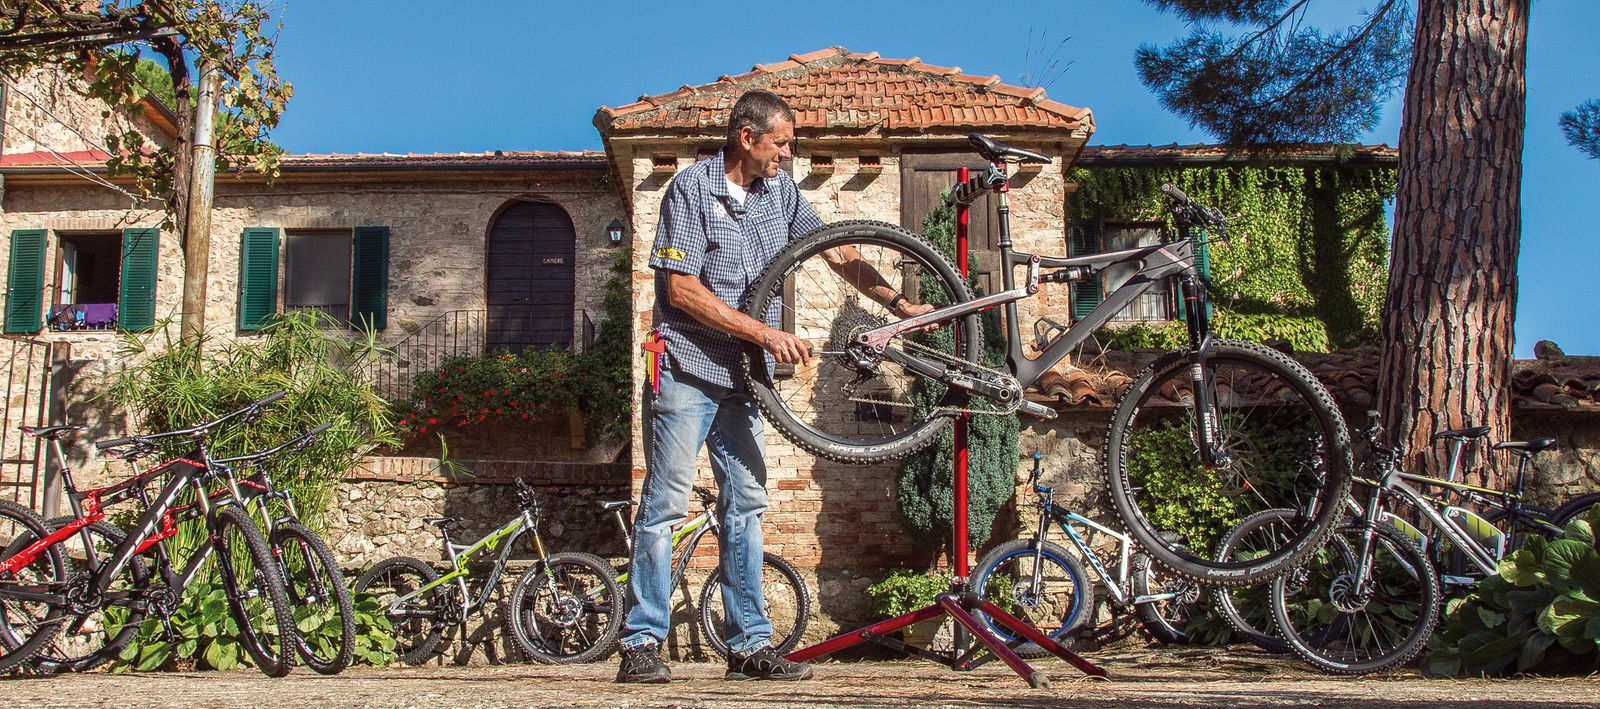 Radtouranbieter in der Toscana: mtbeer-Bikeschule & Solution.